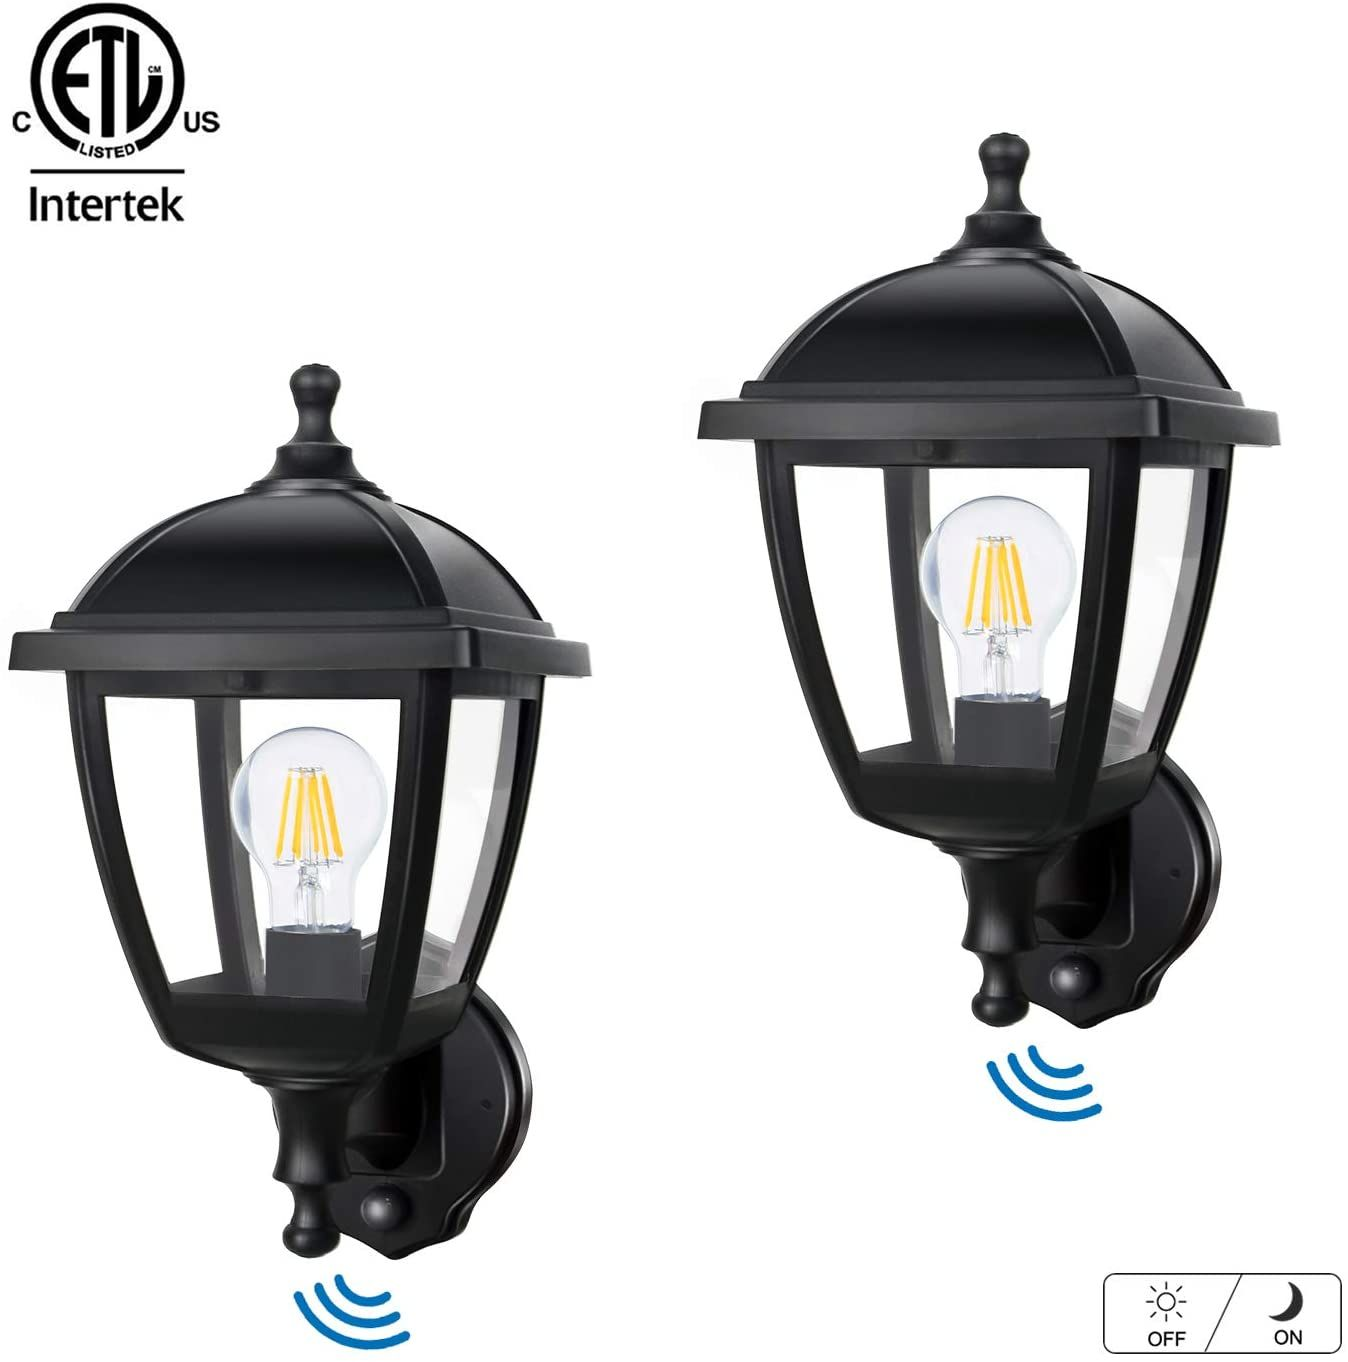 Fudesy 2 Pack Outdoor Wall Lights With Dusk To Dawn Sensor 12w Plastic Corded Electric Exterior L Outdoor Wall Lights Exterior Light Fixtures Exterior Lighting Dusk to dawn light fixture